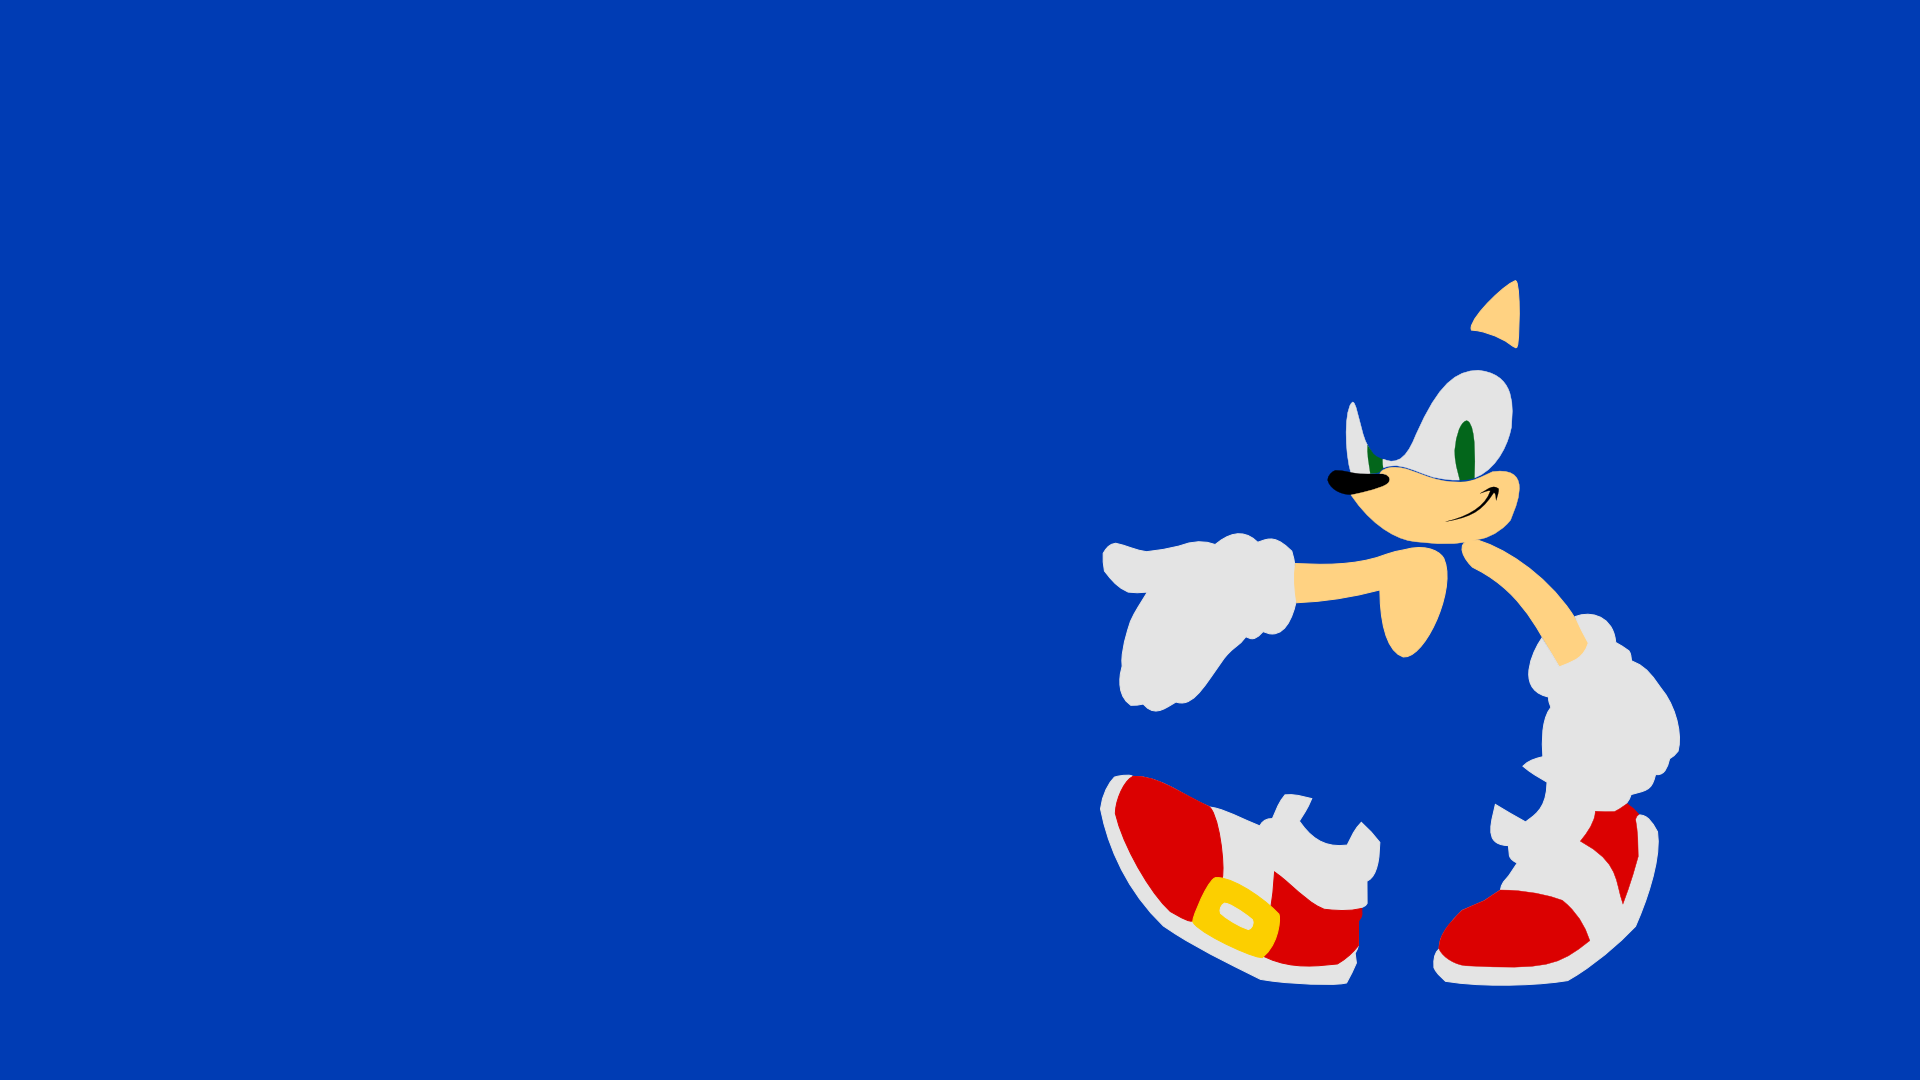 sonic the hedgehog iphone wallpaper wallpapersafari